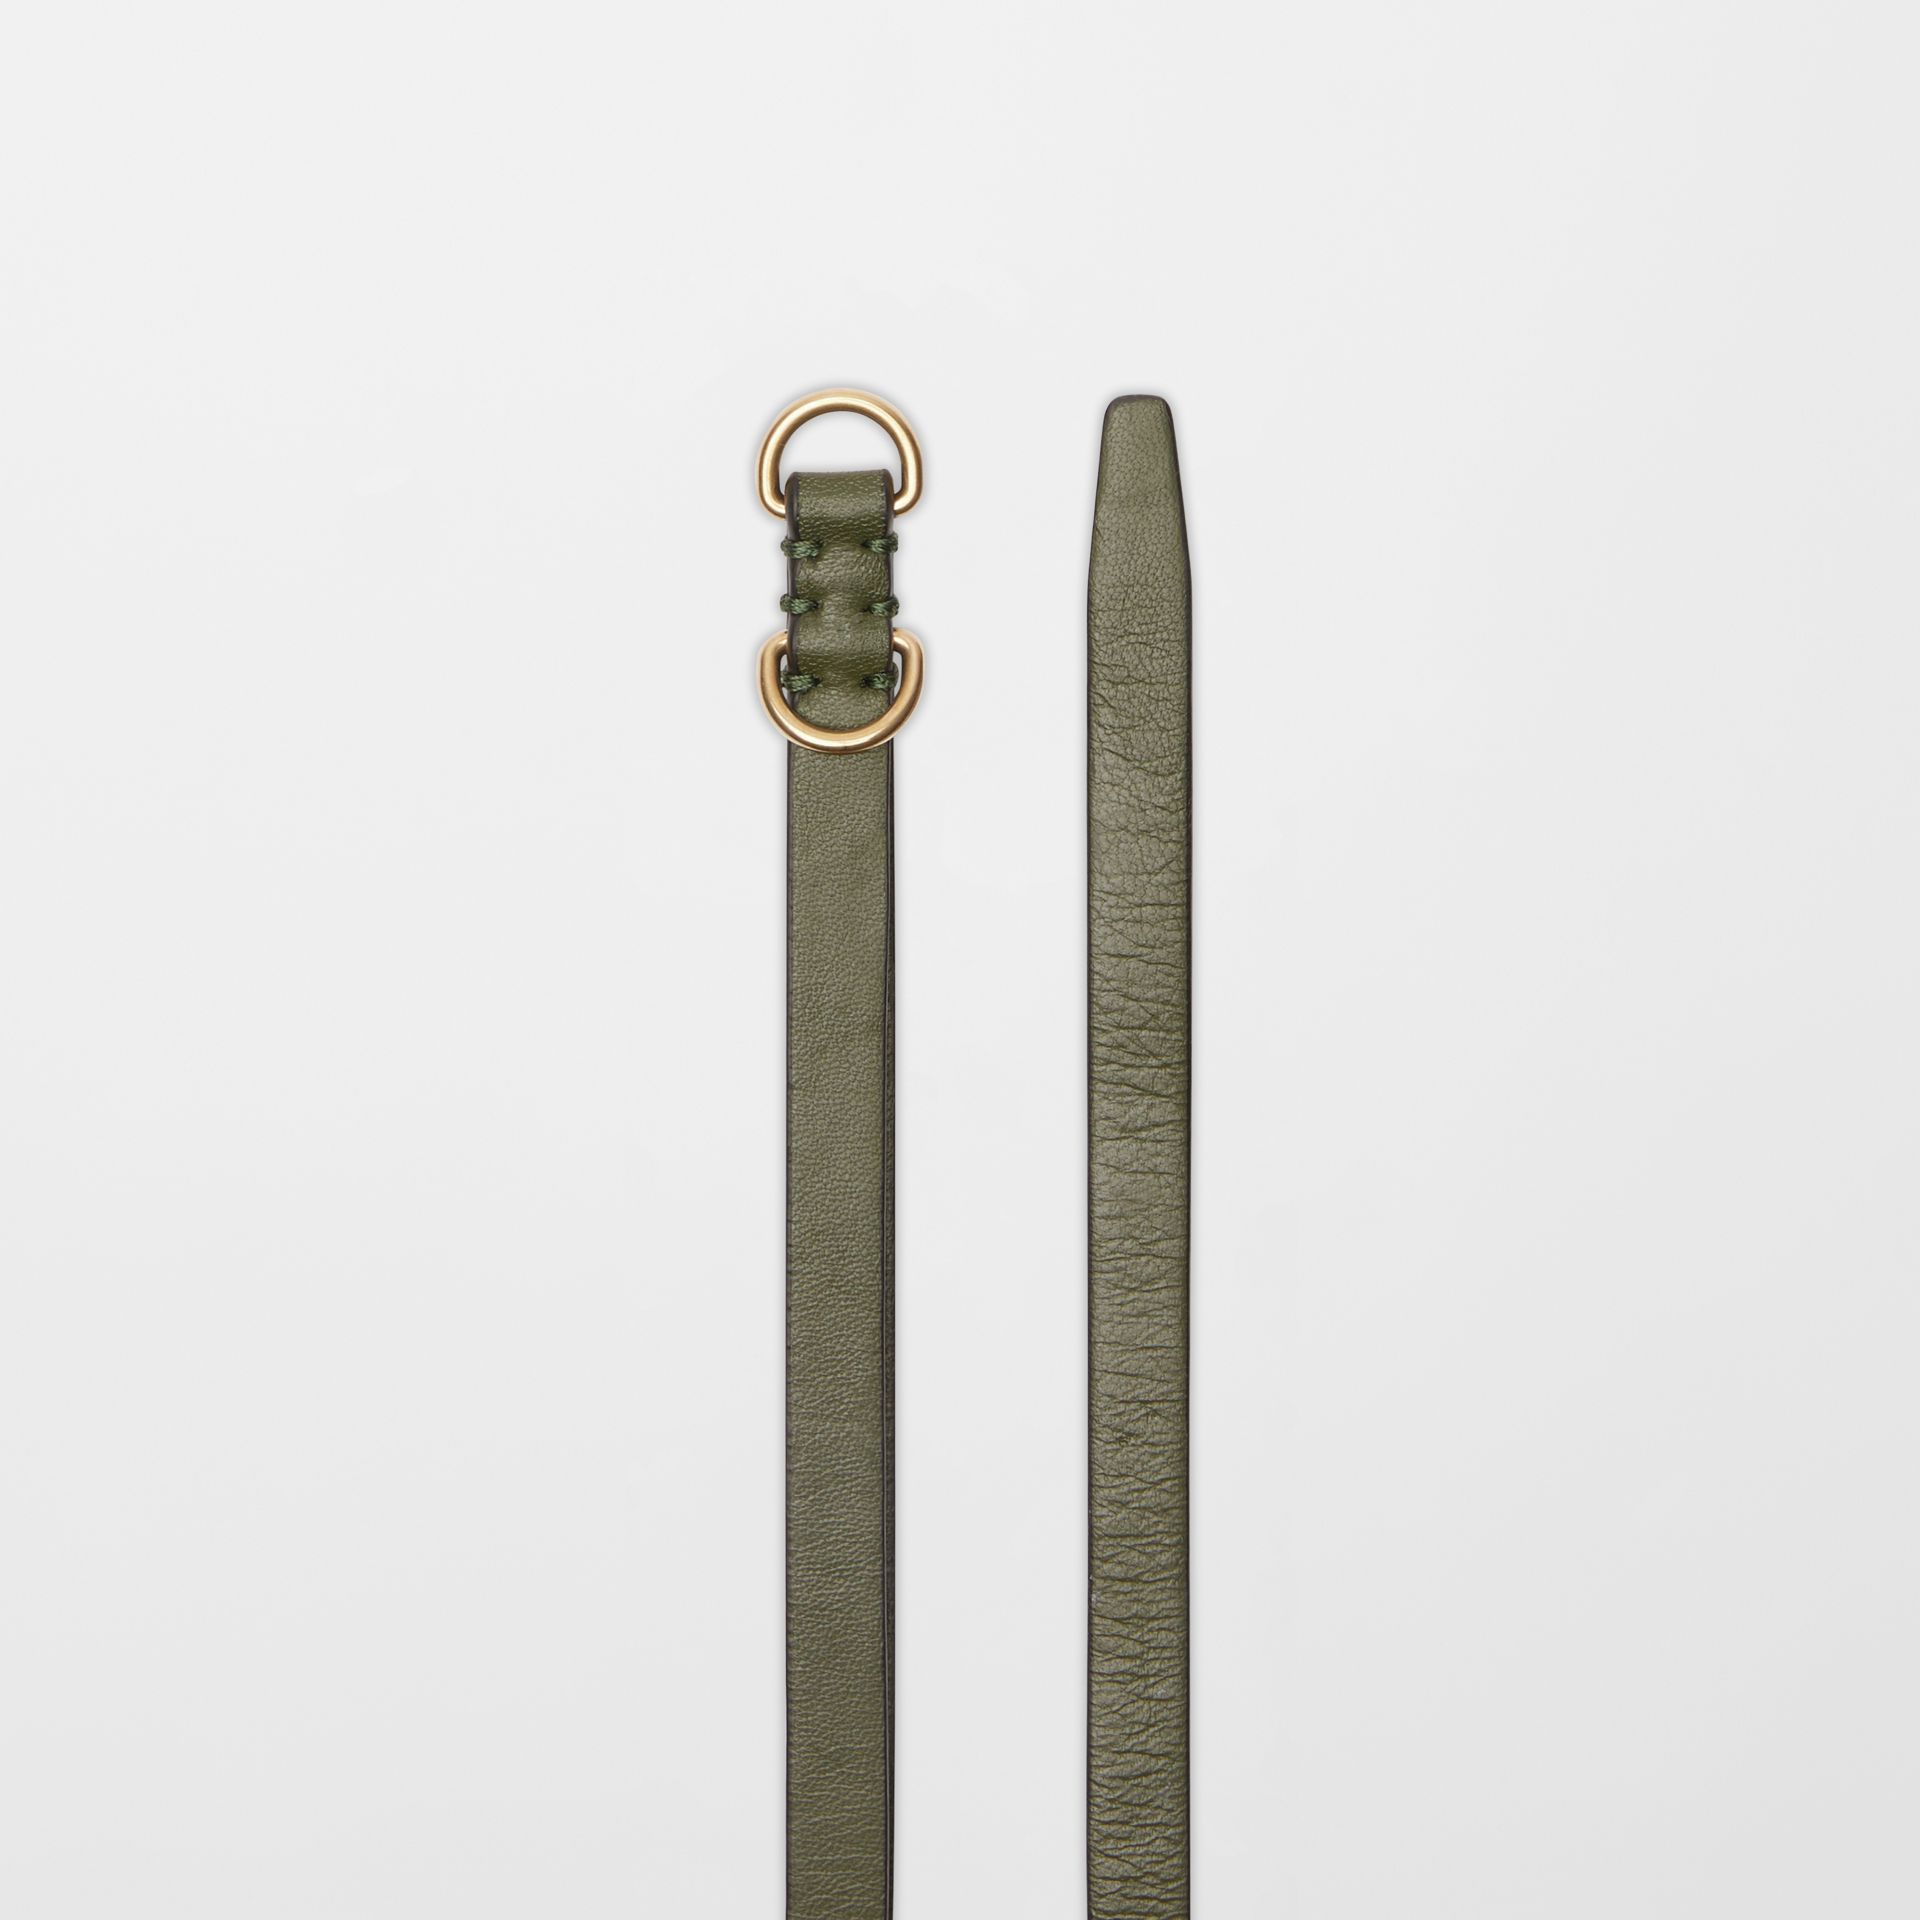 Grommet Detail Lambskin Belt in Dark Olive - Women | Burberry Australia - gallery image 5